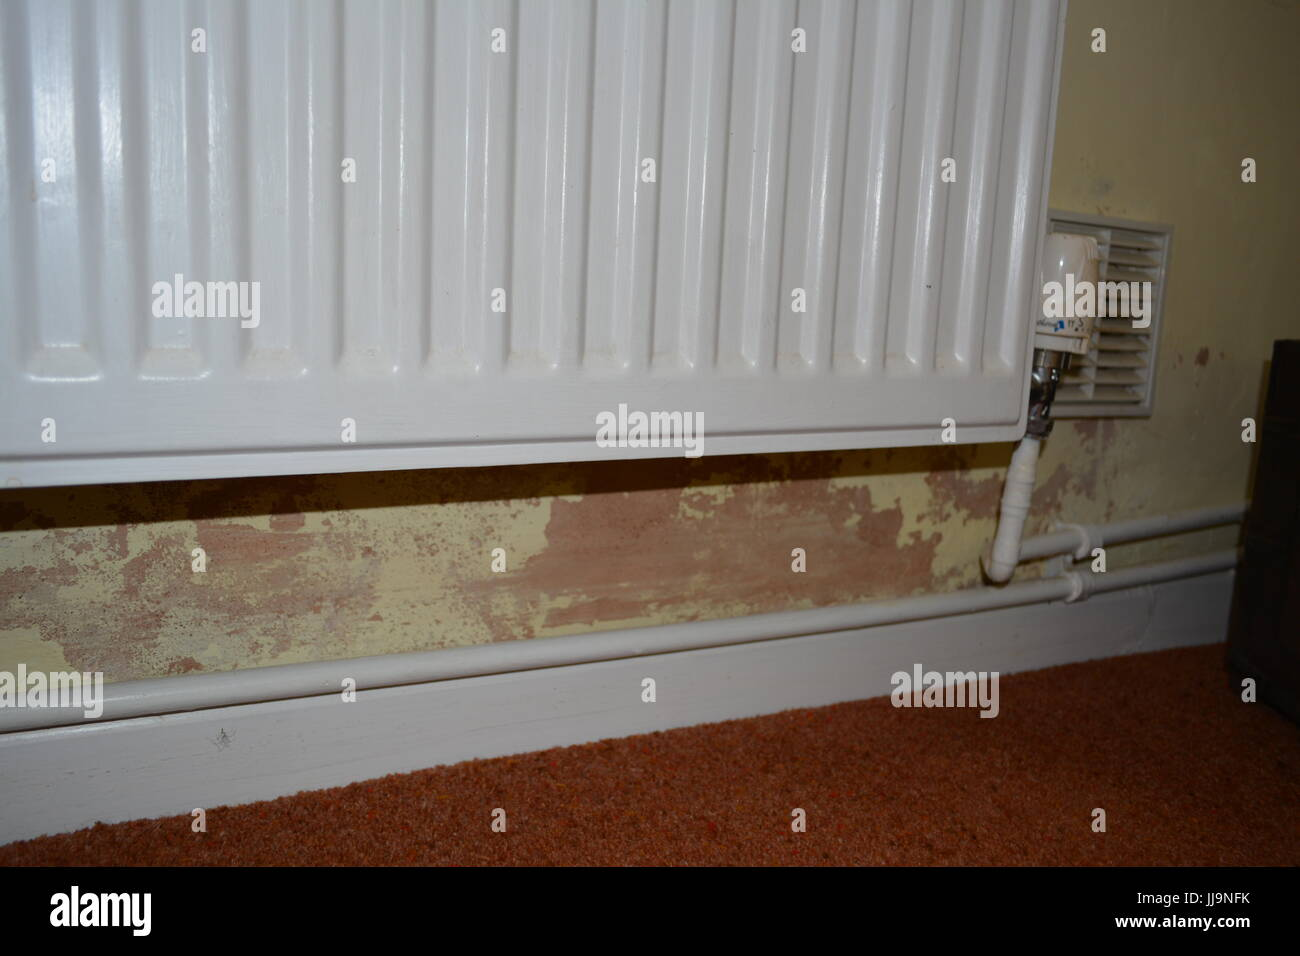 Rising damp on inside wall of old house re peeling paint poor stock rising damp on inside wall of old house re peeling paint poor decoration dpc dpm damp proof course membrane radiator ventilation heat heating pipes solutioingenieria Images